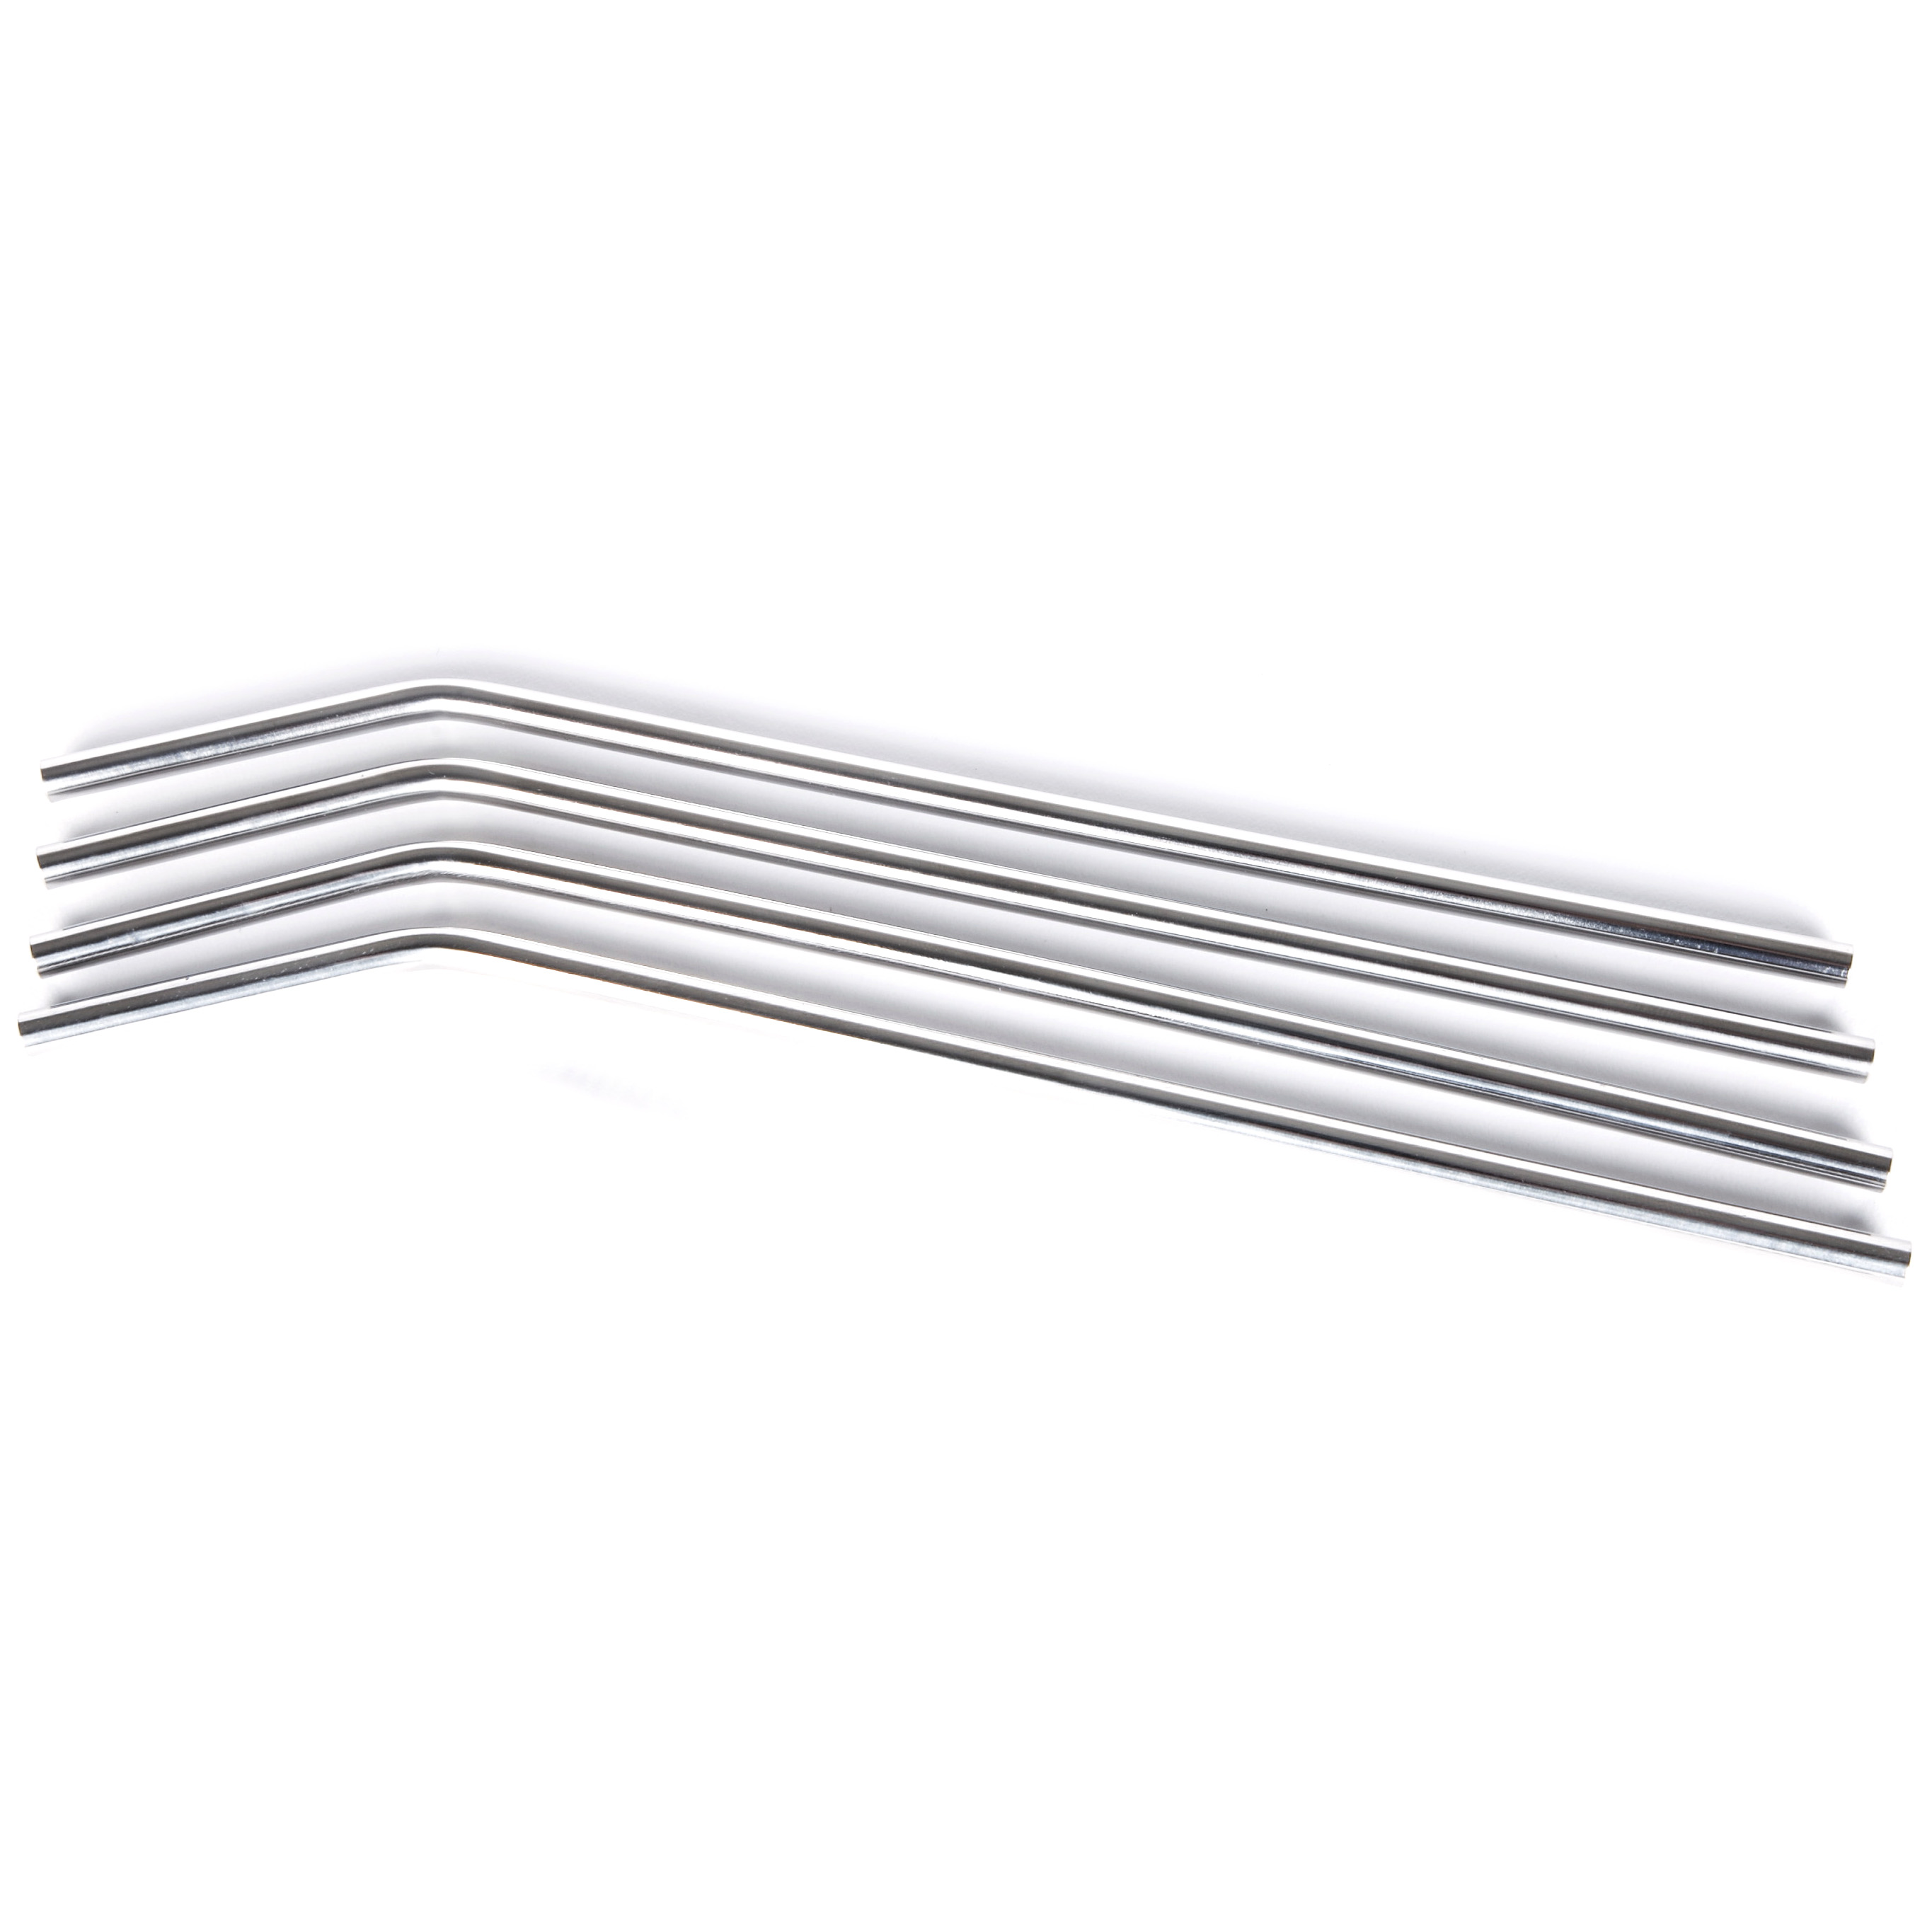 Onyx 18/8 Stainless Steel 4 Piece Small Straw Set